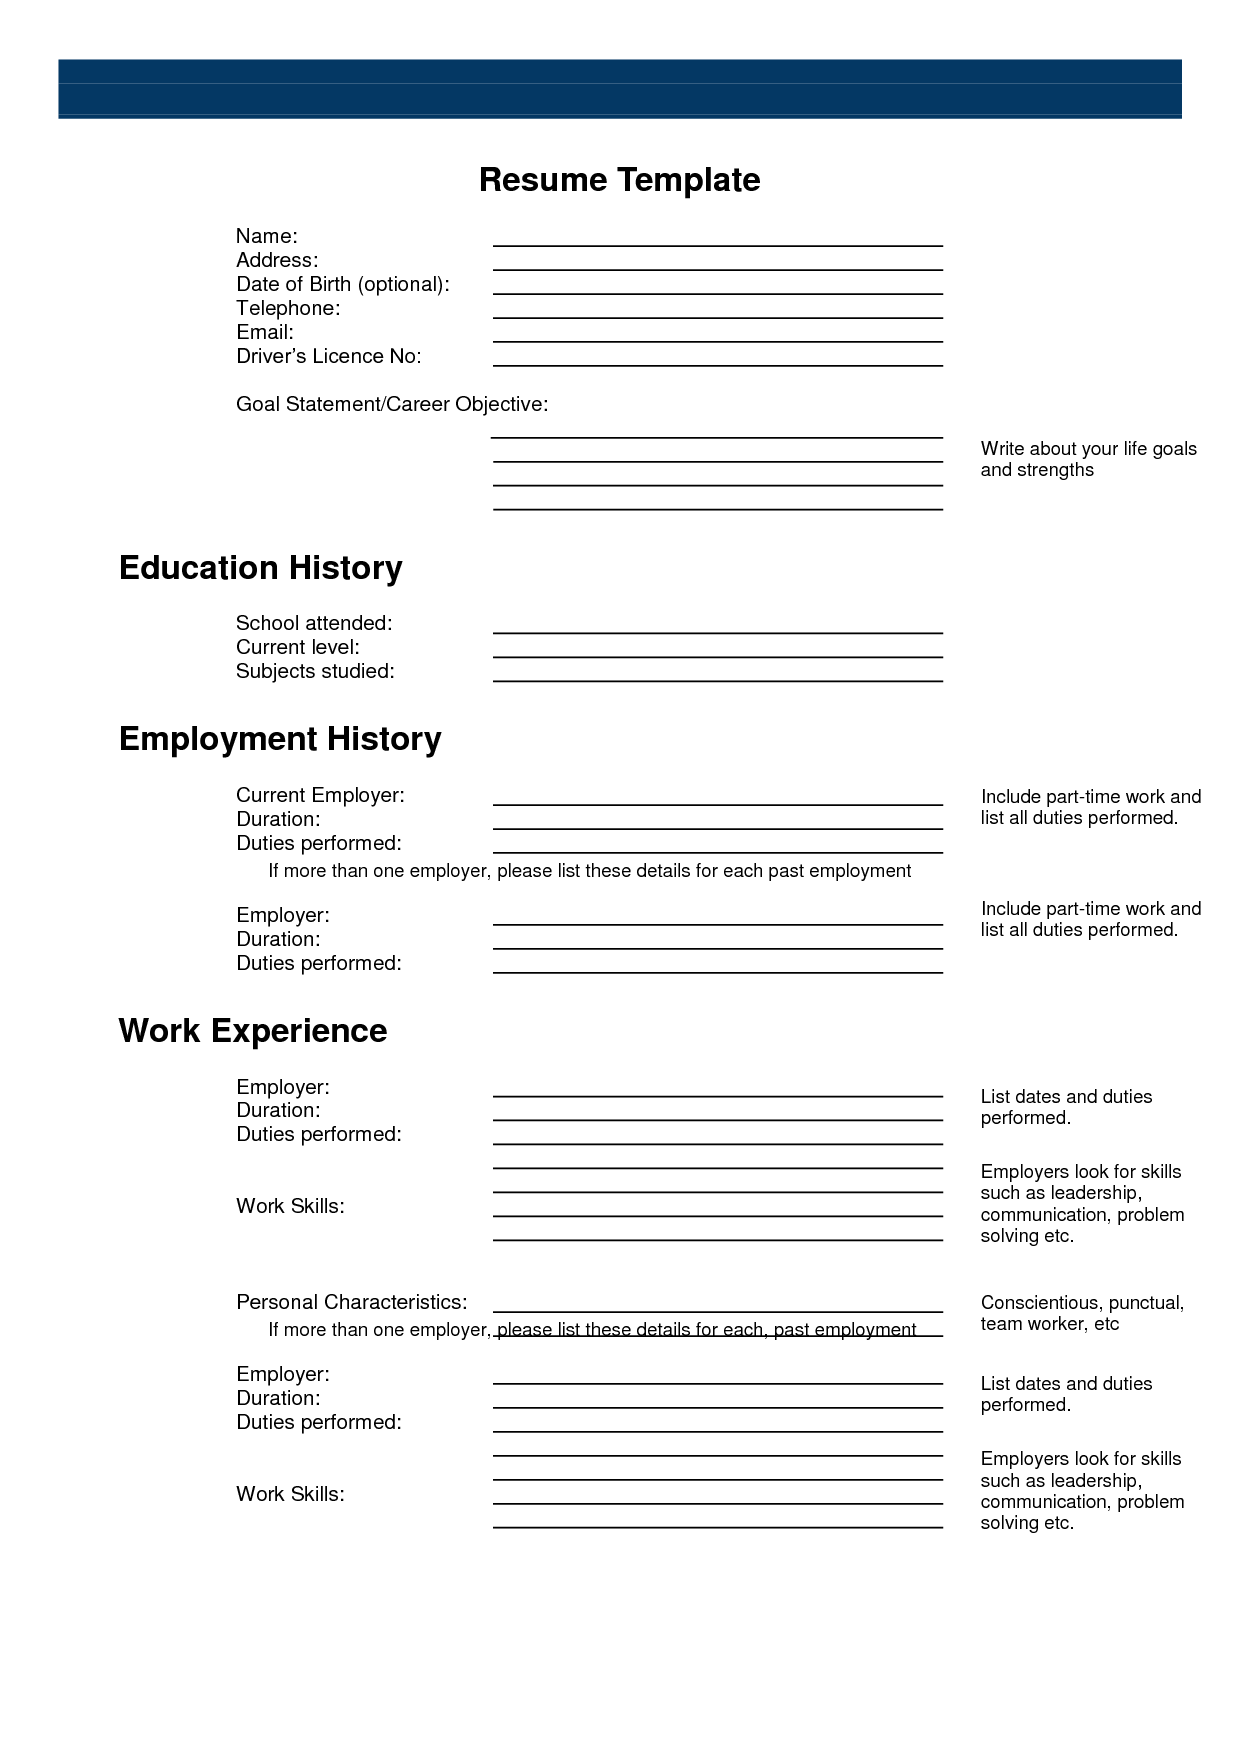 Free Printable Sample Resume Templates   Http://www.resumecareer.info/  Free Sample Resume Builder